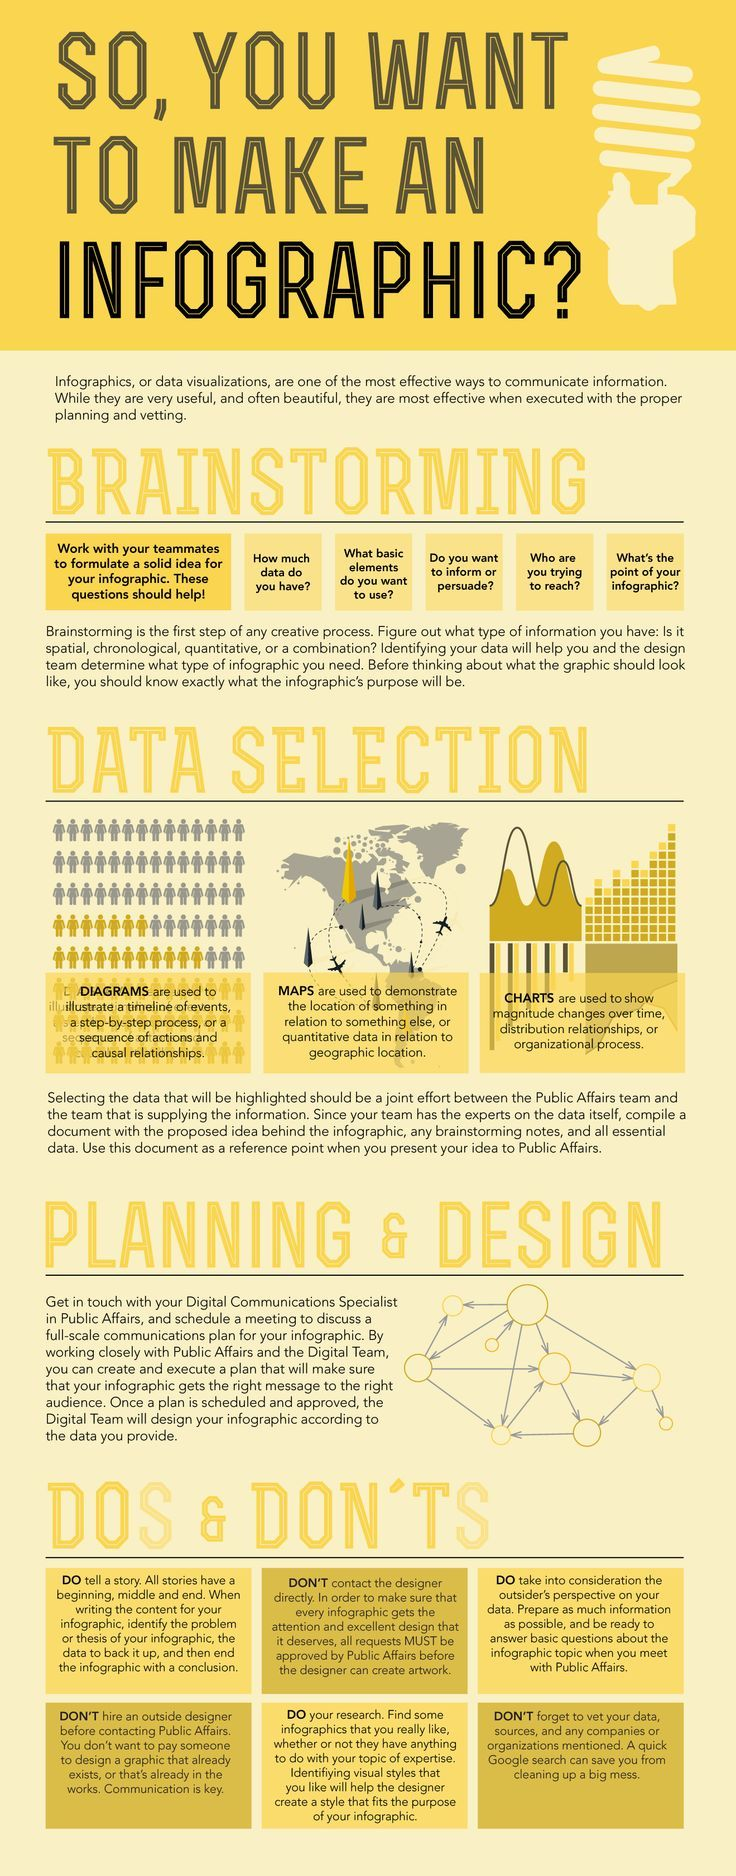 So, You Want to Make an Infographic?    The process behind infographics: insight into how the Department of Energy's creative team plans, designs, and publishes its #infographics.